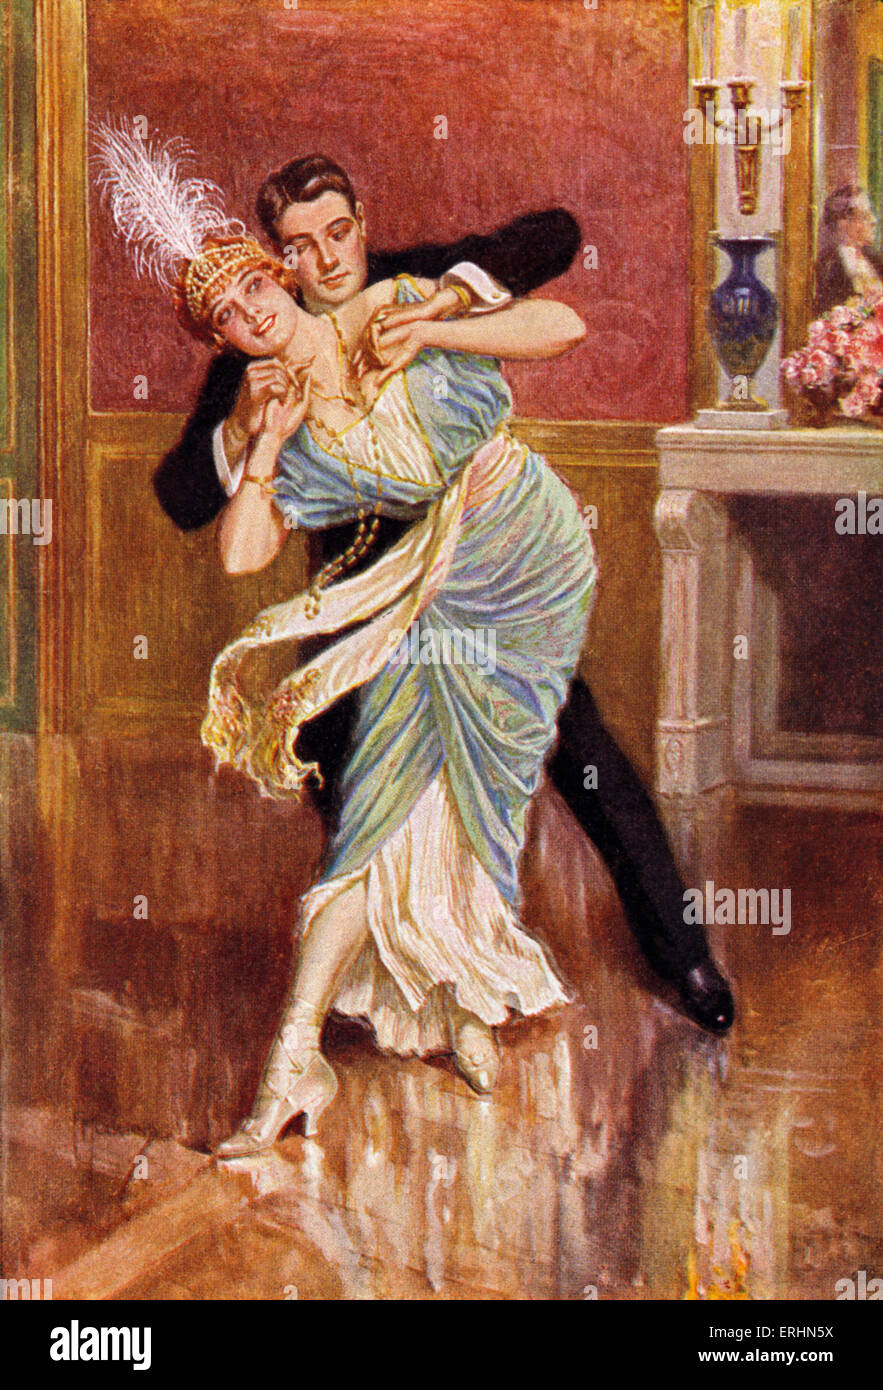 Couple dancing in Vienna late 19th century Woman is wearing a feather head dress and long necklace of pearls.  Caption - Stock Image